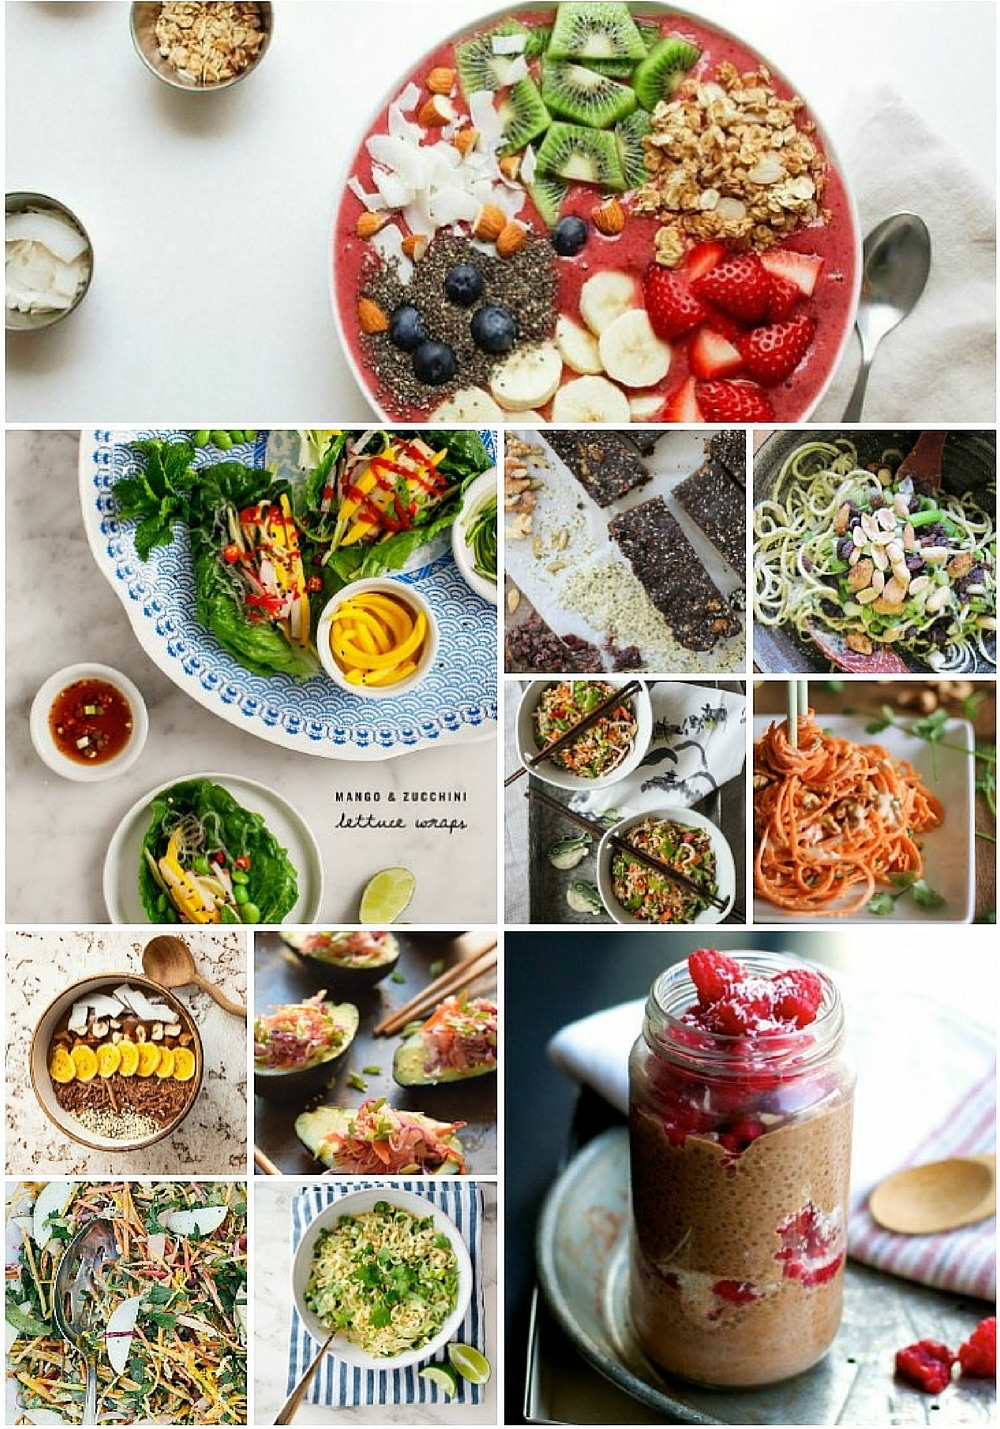 21 awesome raw food recipes for beginners to try yuri elkaim forumfinder